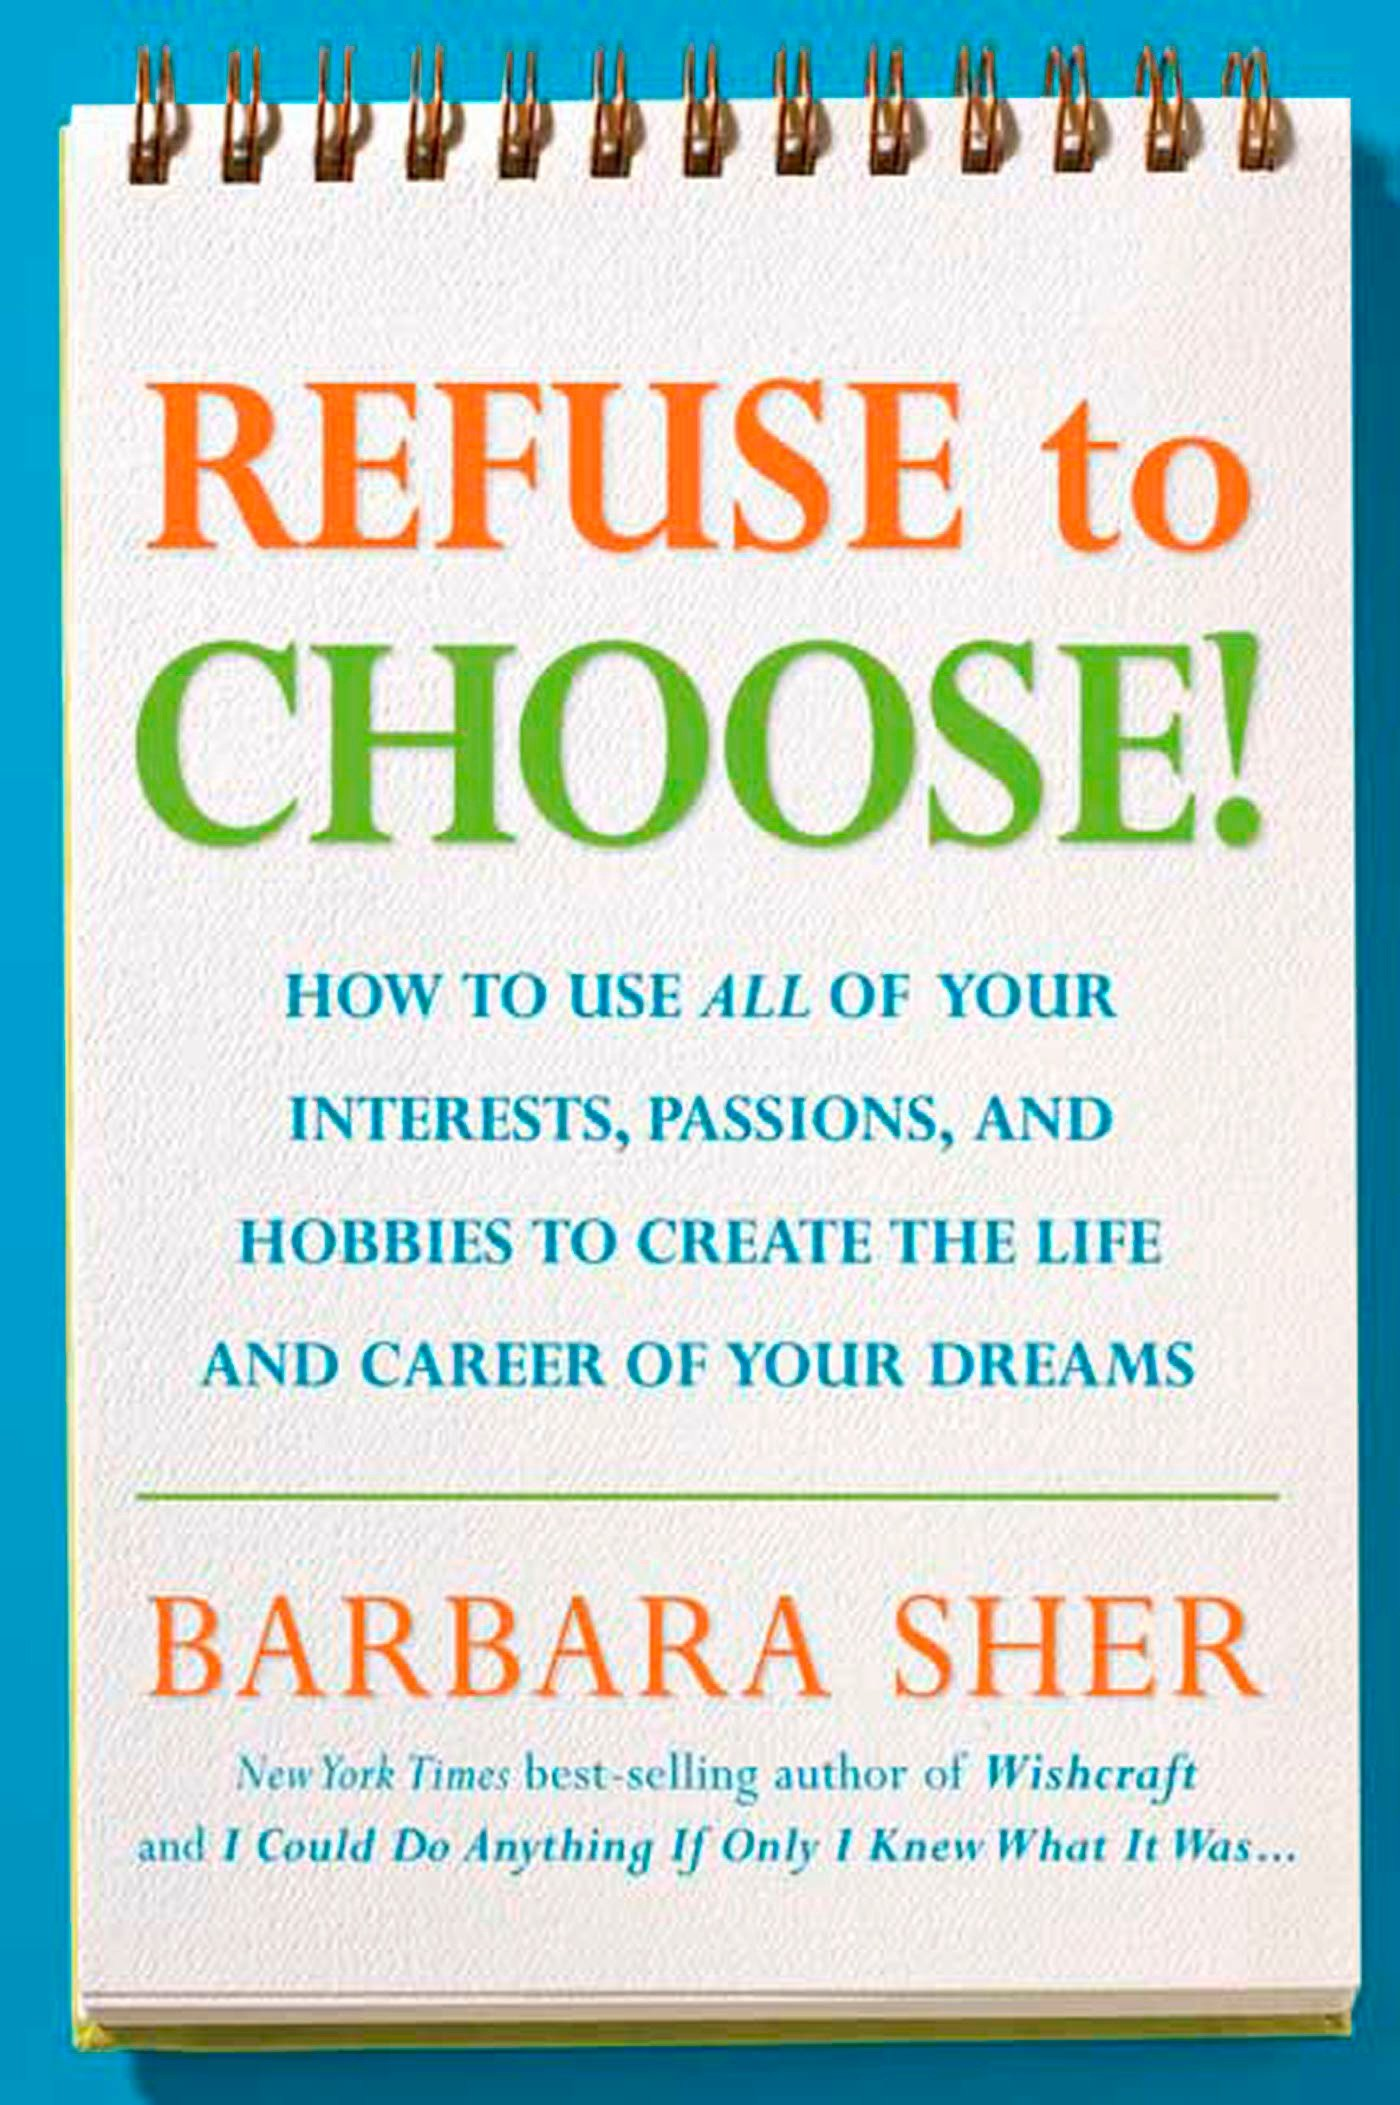 Refuse To Choose Use All Of Your Interests Passions And Hobbies To Create The Life And Career Of Your Dreams Sher Barbara 9781594866265 Amazon Com Books